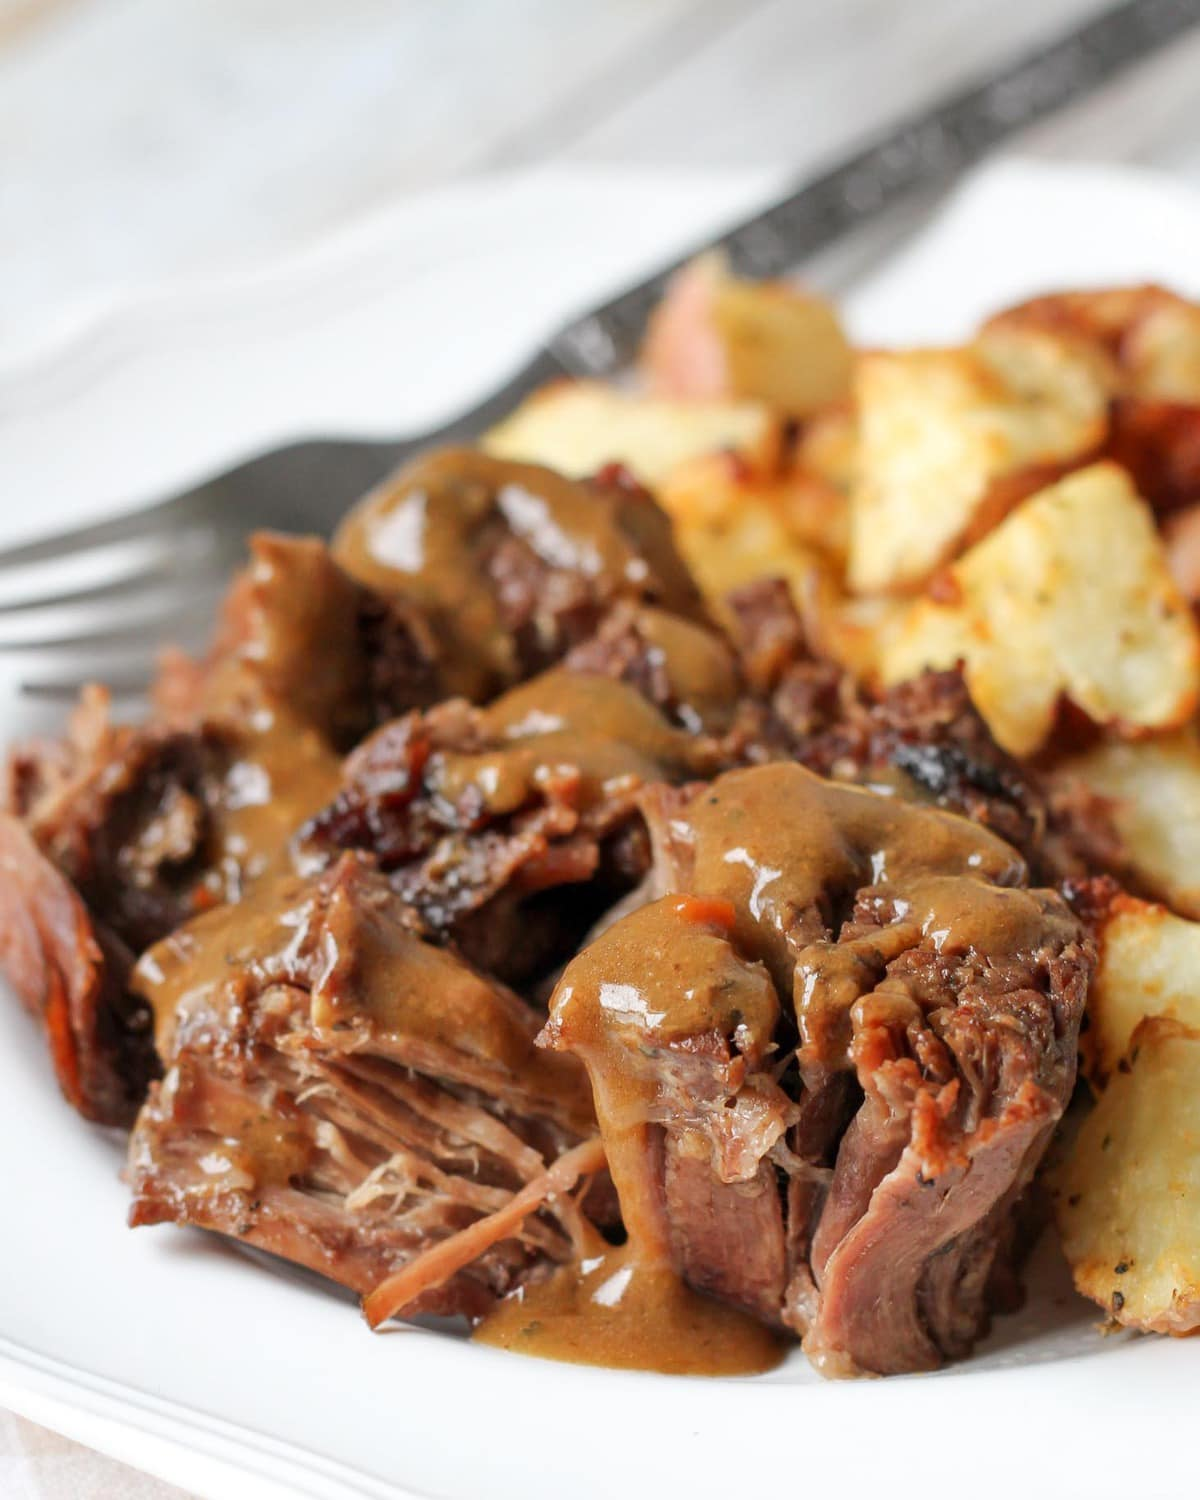 Chuck Roast Crock Pot Recipe on plate with gravy